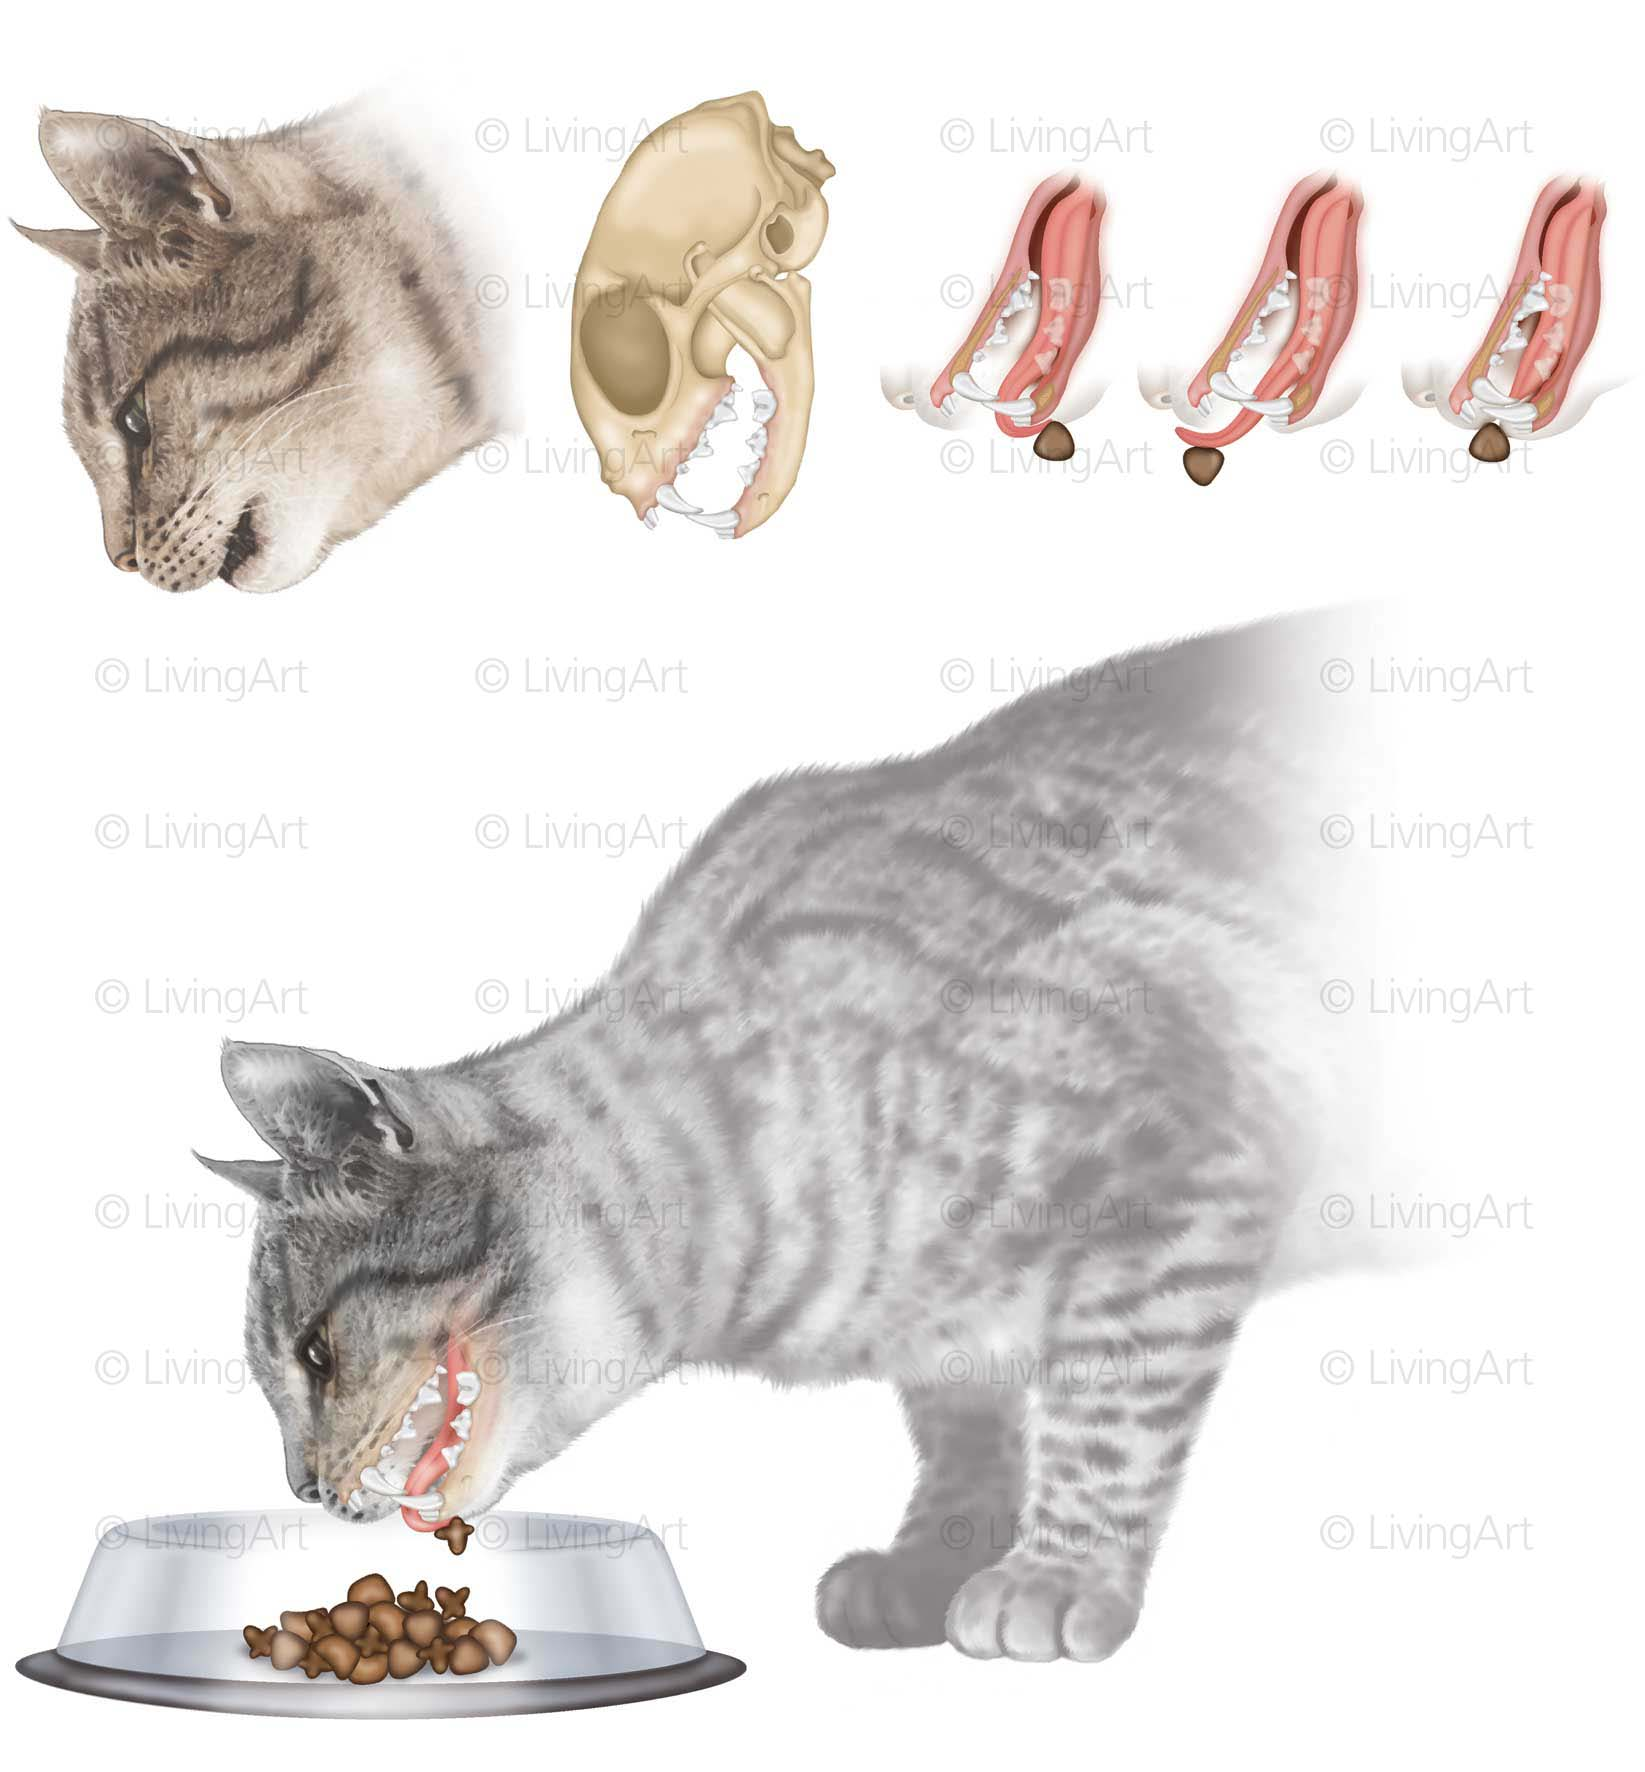 NEW-Cat-feeding-and-anatomical